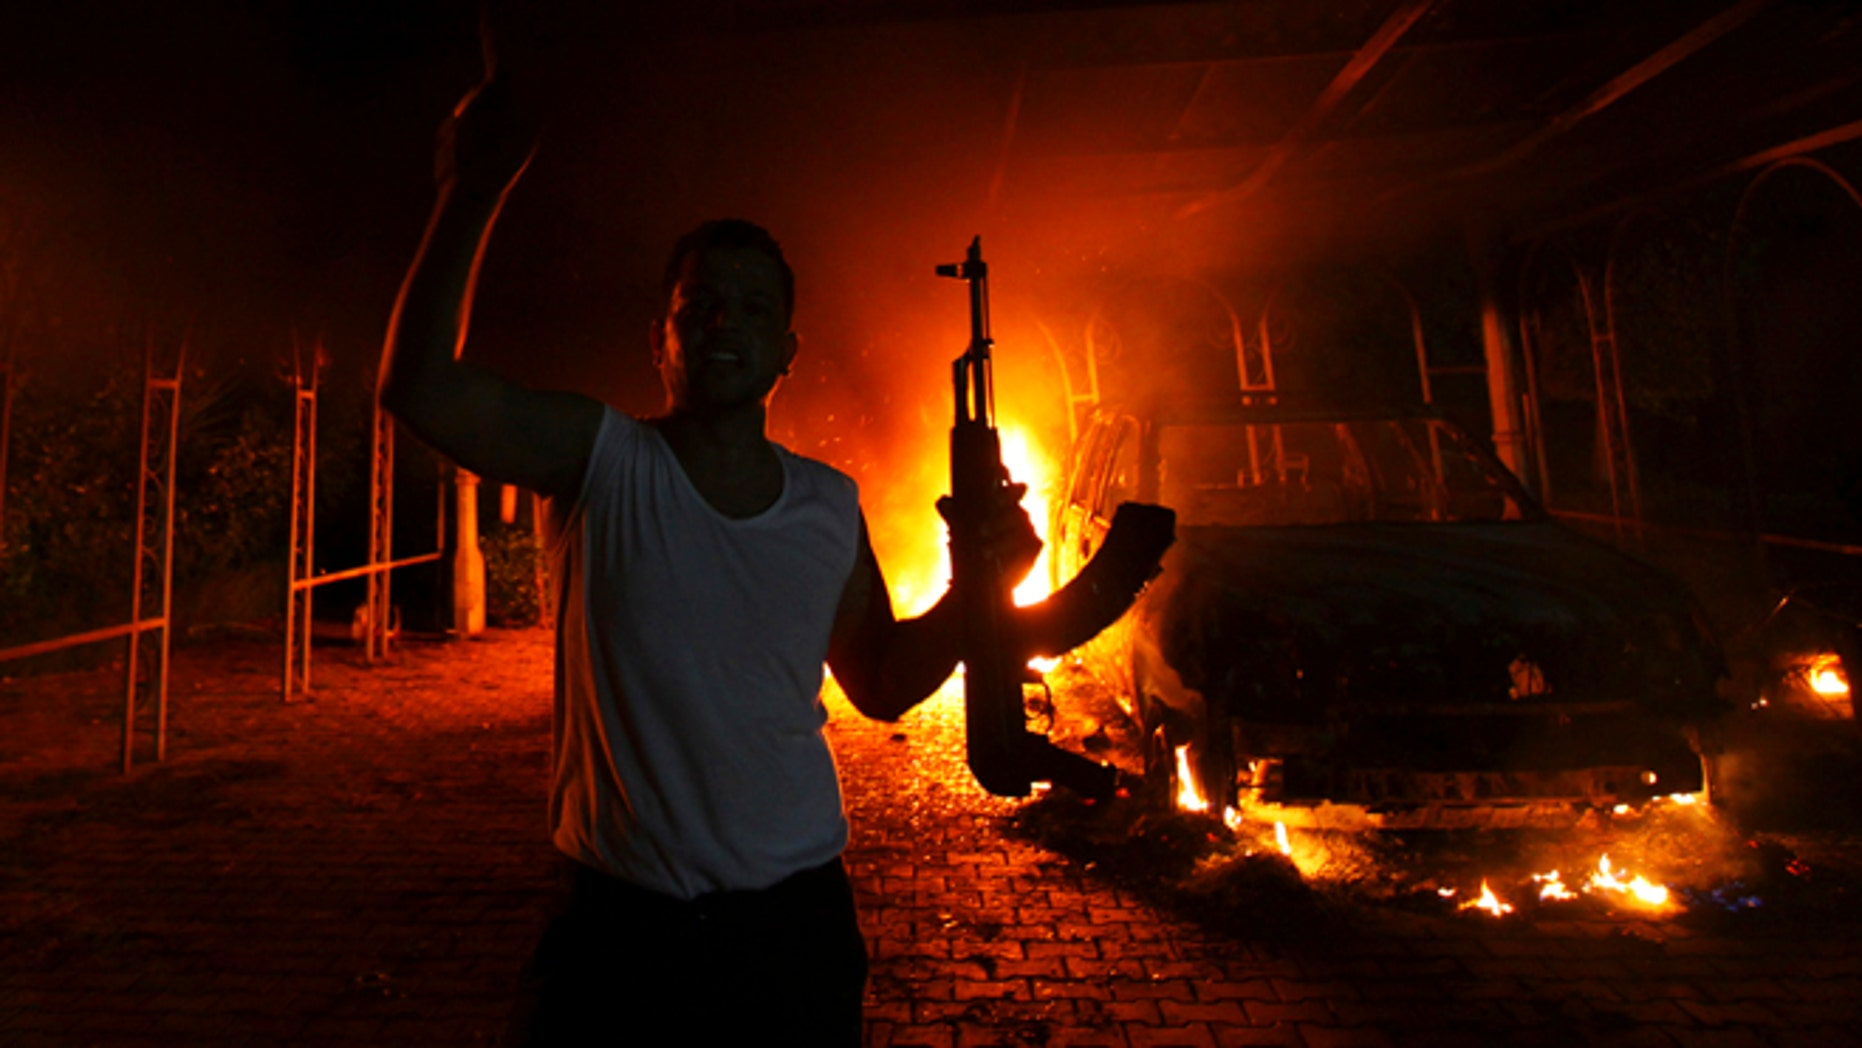 FILE 2012: A protester reacts as the U.S. Consulate in Benghazi is seen in flames. Sixty-six percent of voters want Congress to keep investigating the White House's handling of Benghazi, according to a Fox News poll.